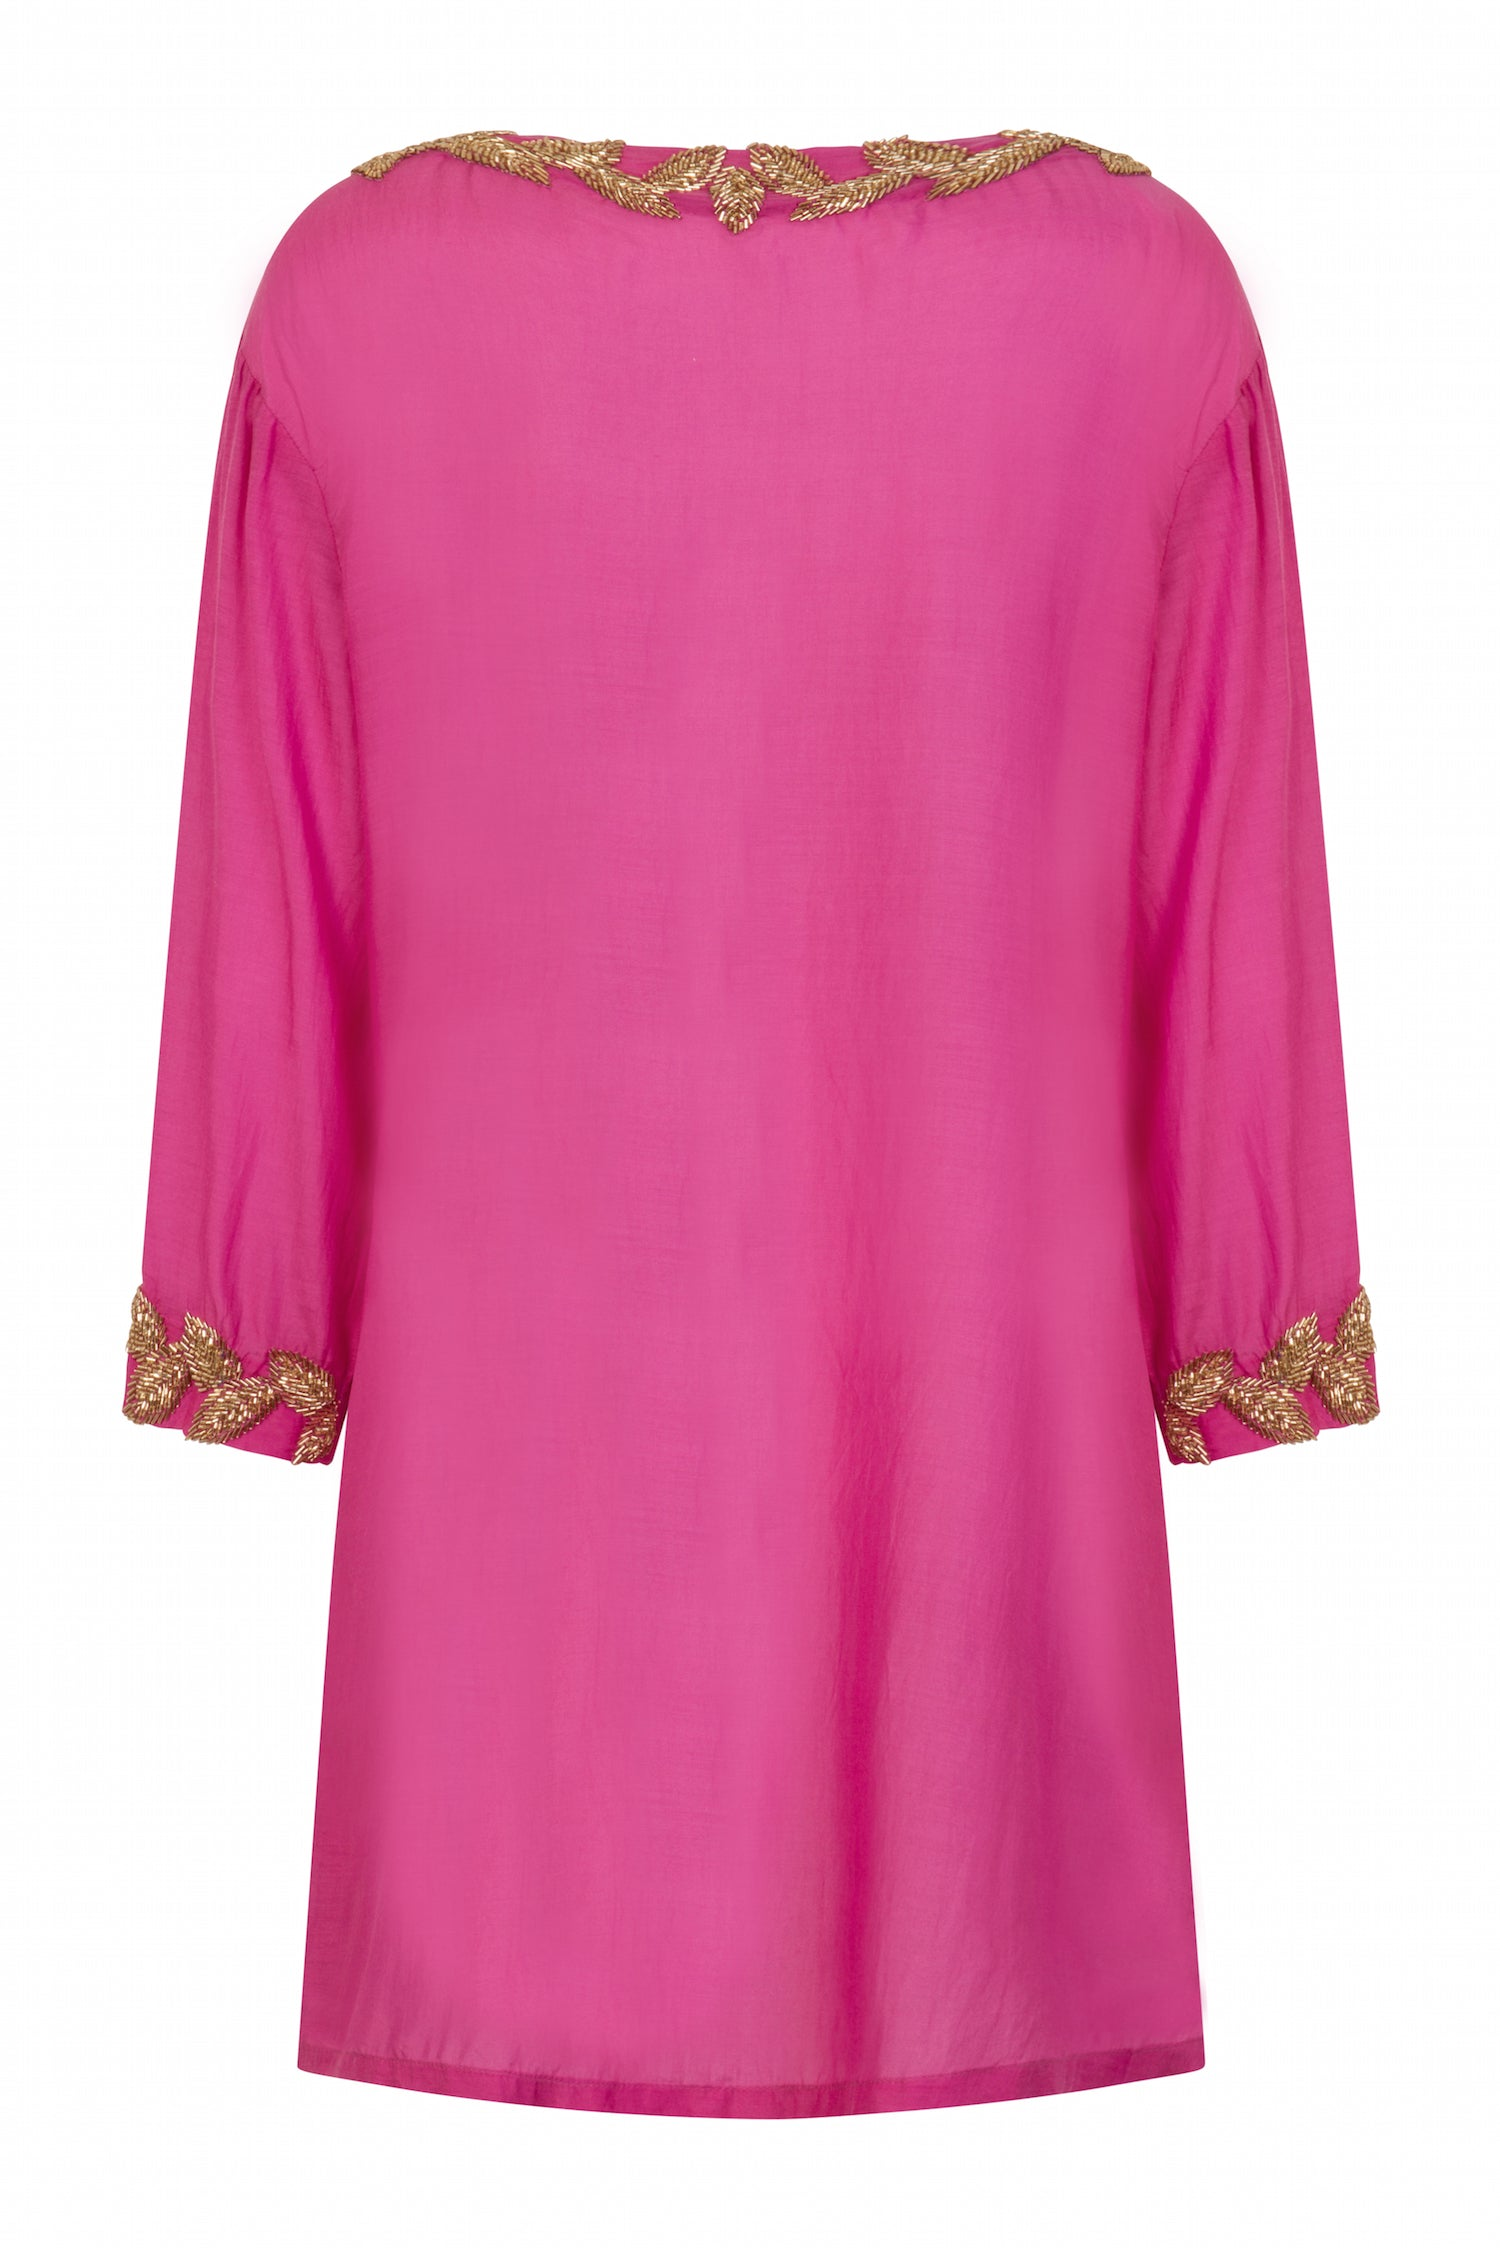 Sirena shirt style designer kaftan (hand beaded) pink - Guilty Beach